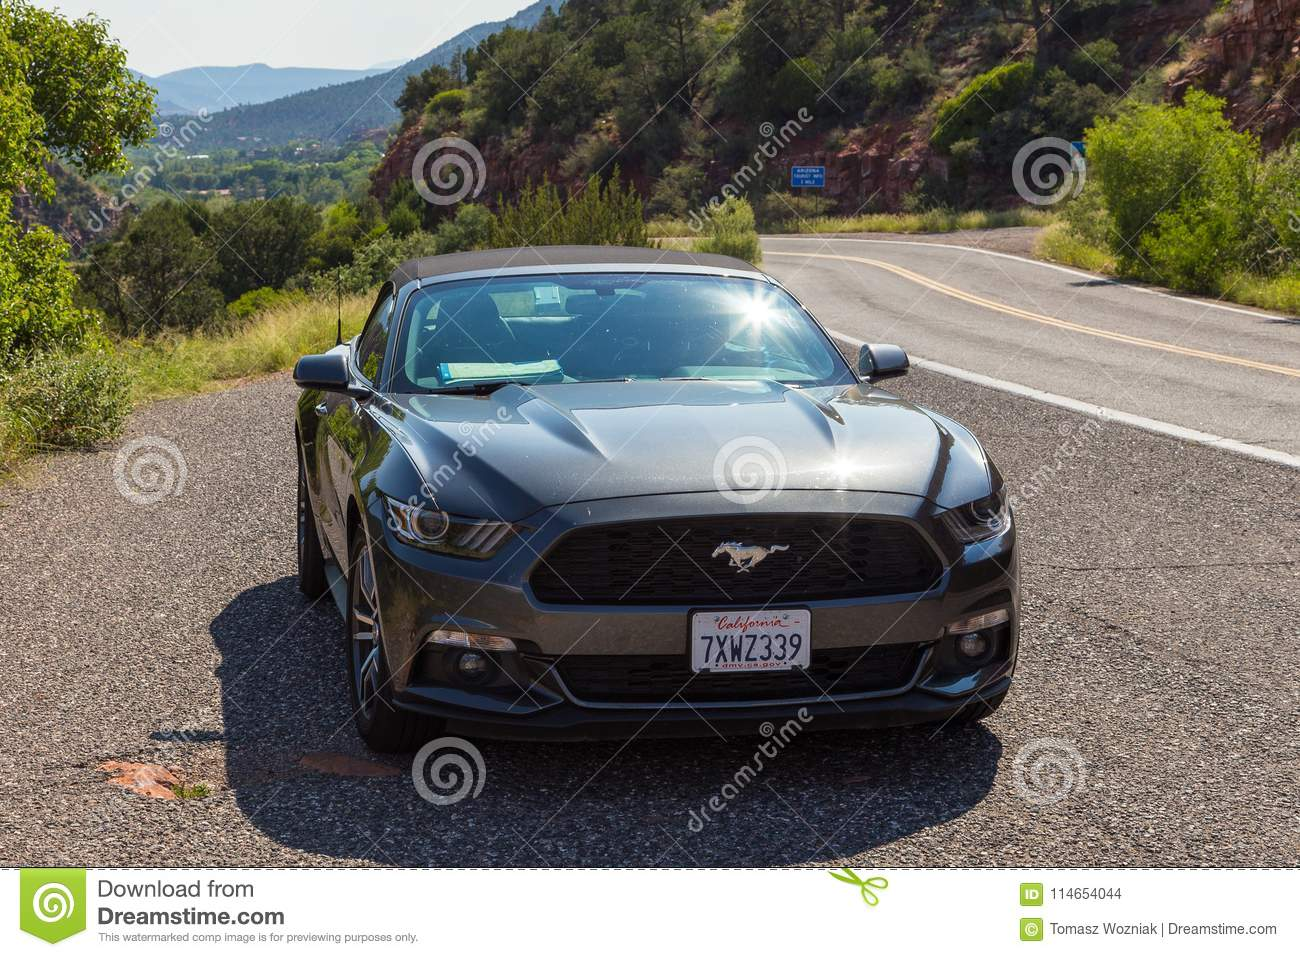 Arizona usa september 02 2017 new silver ford mustang cabriolet on the street in arizona